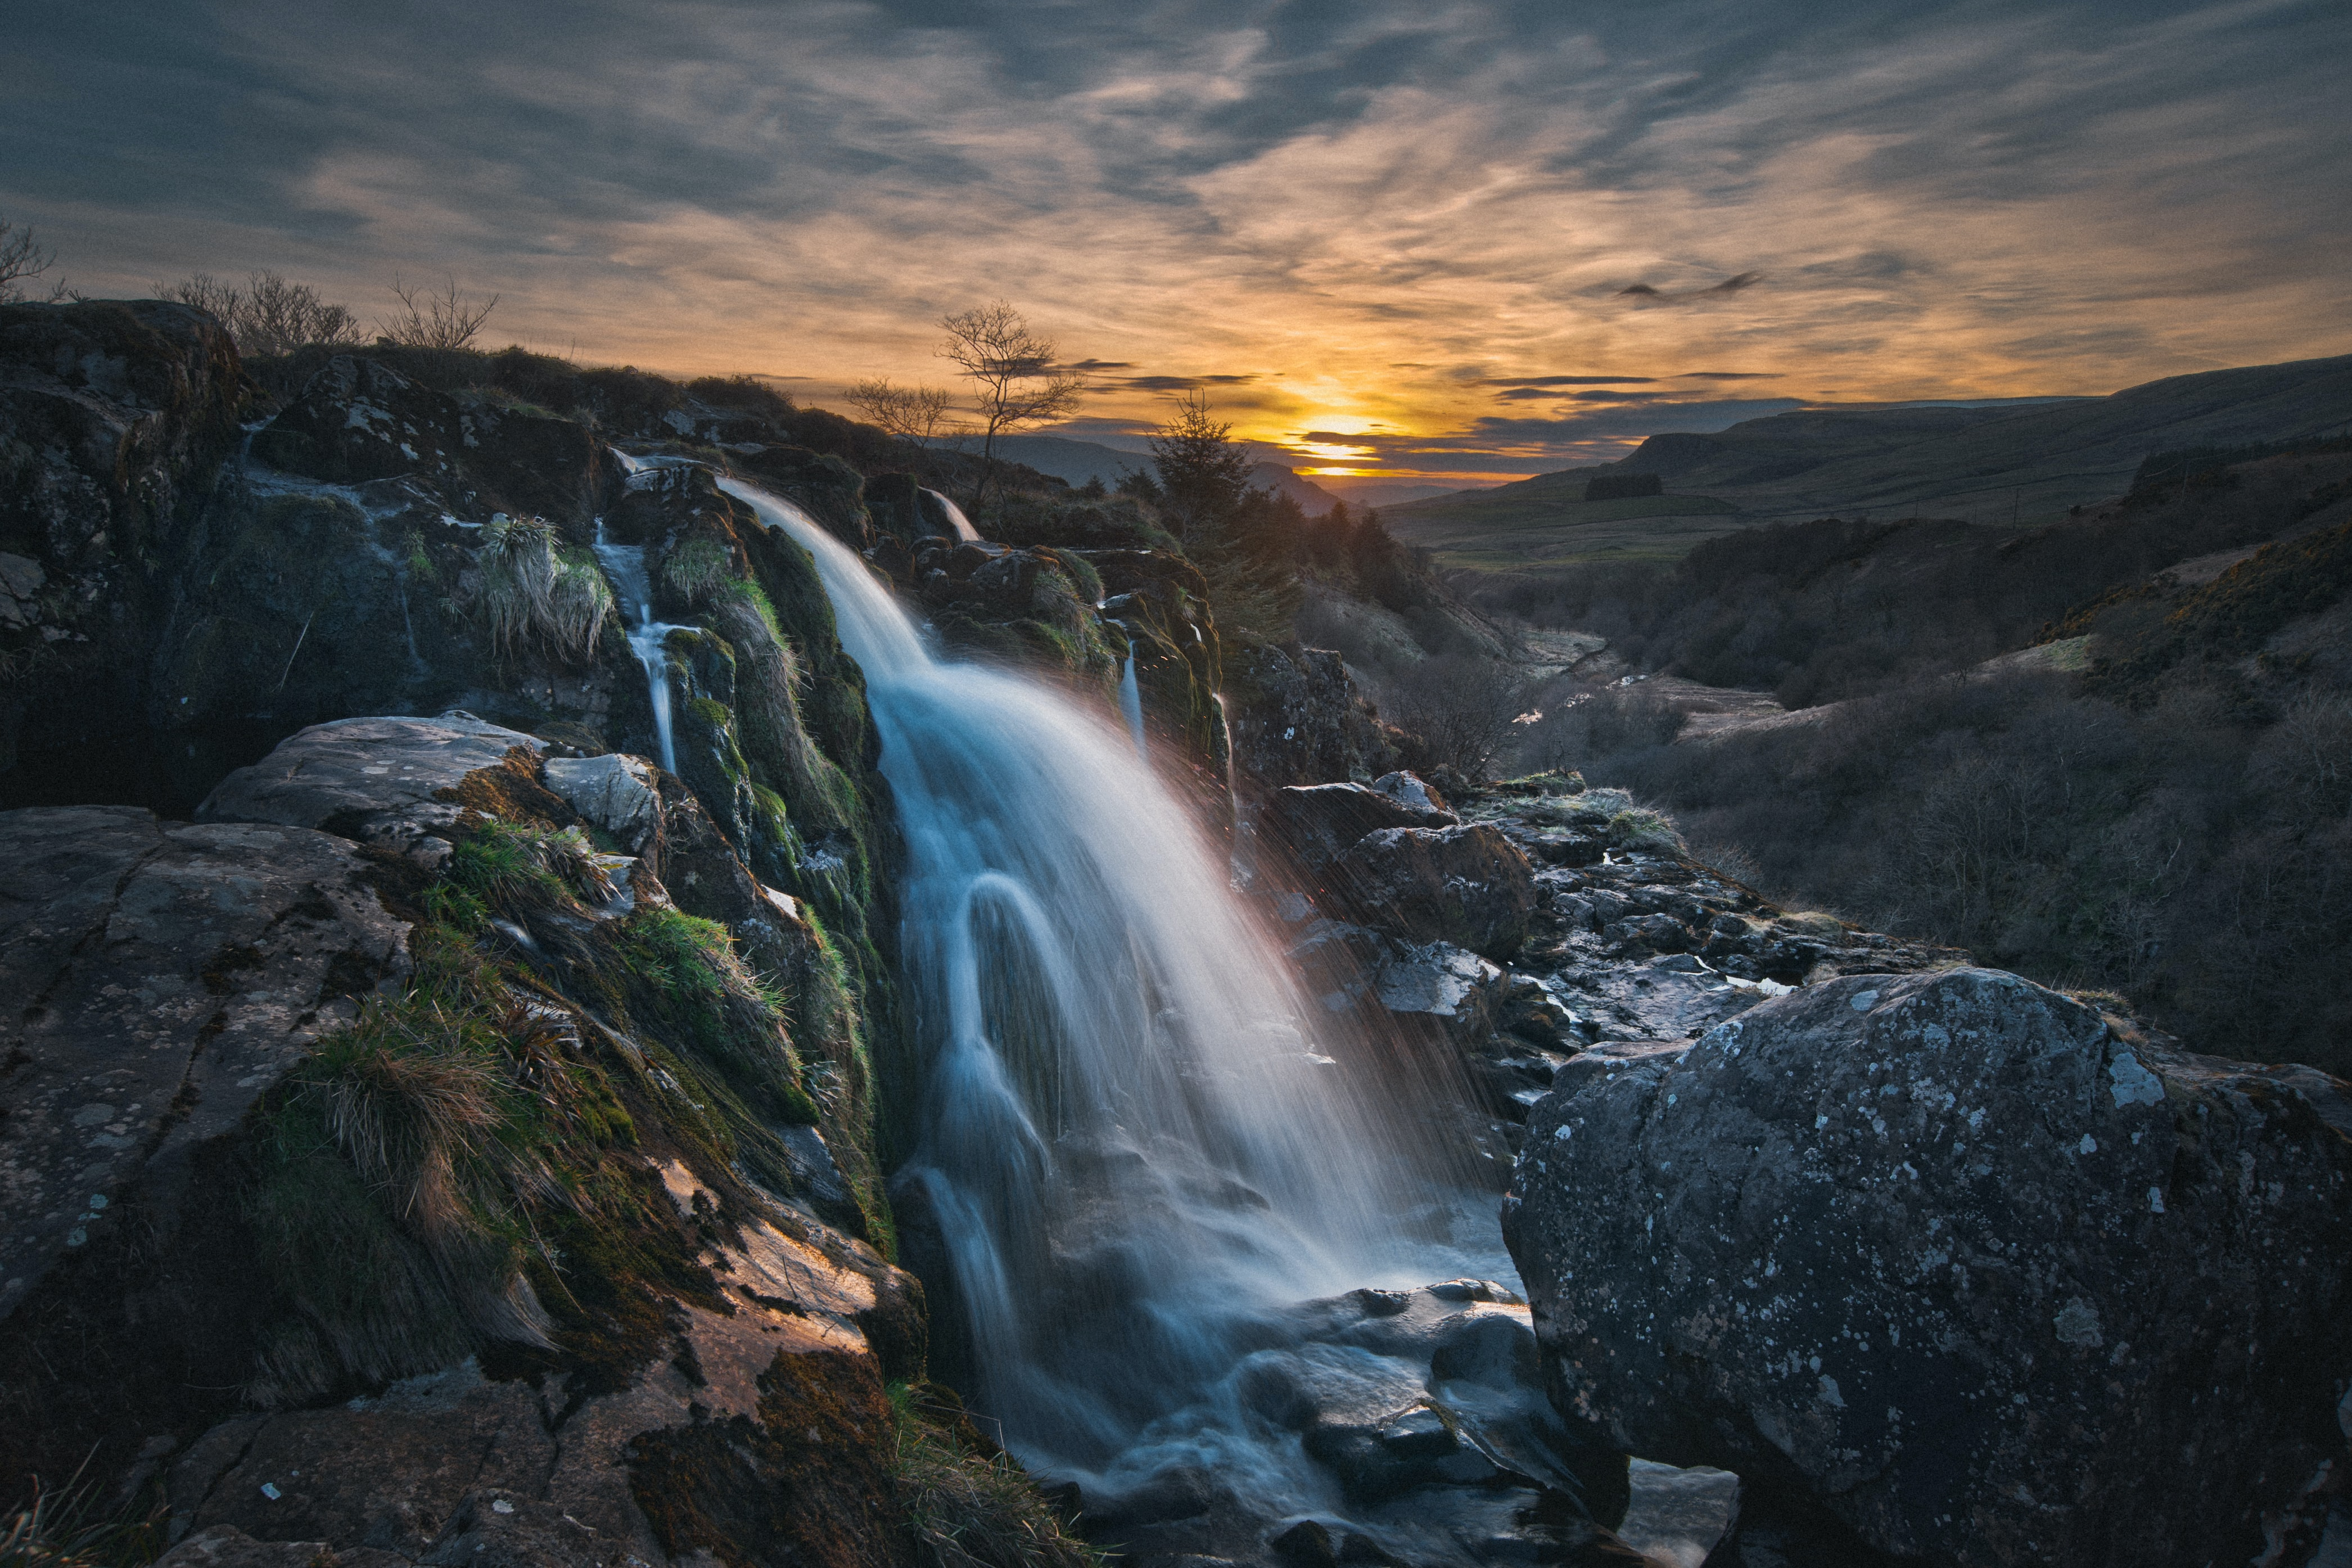 Waterfall off mossy rocks against sunset